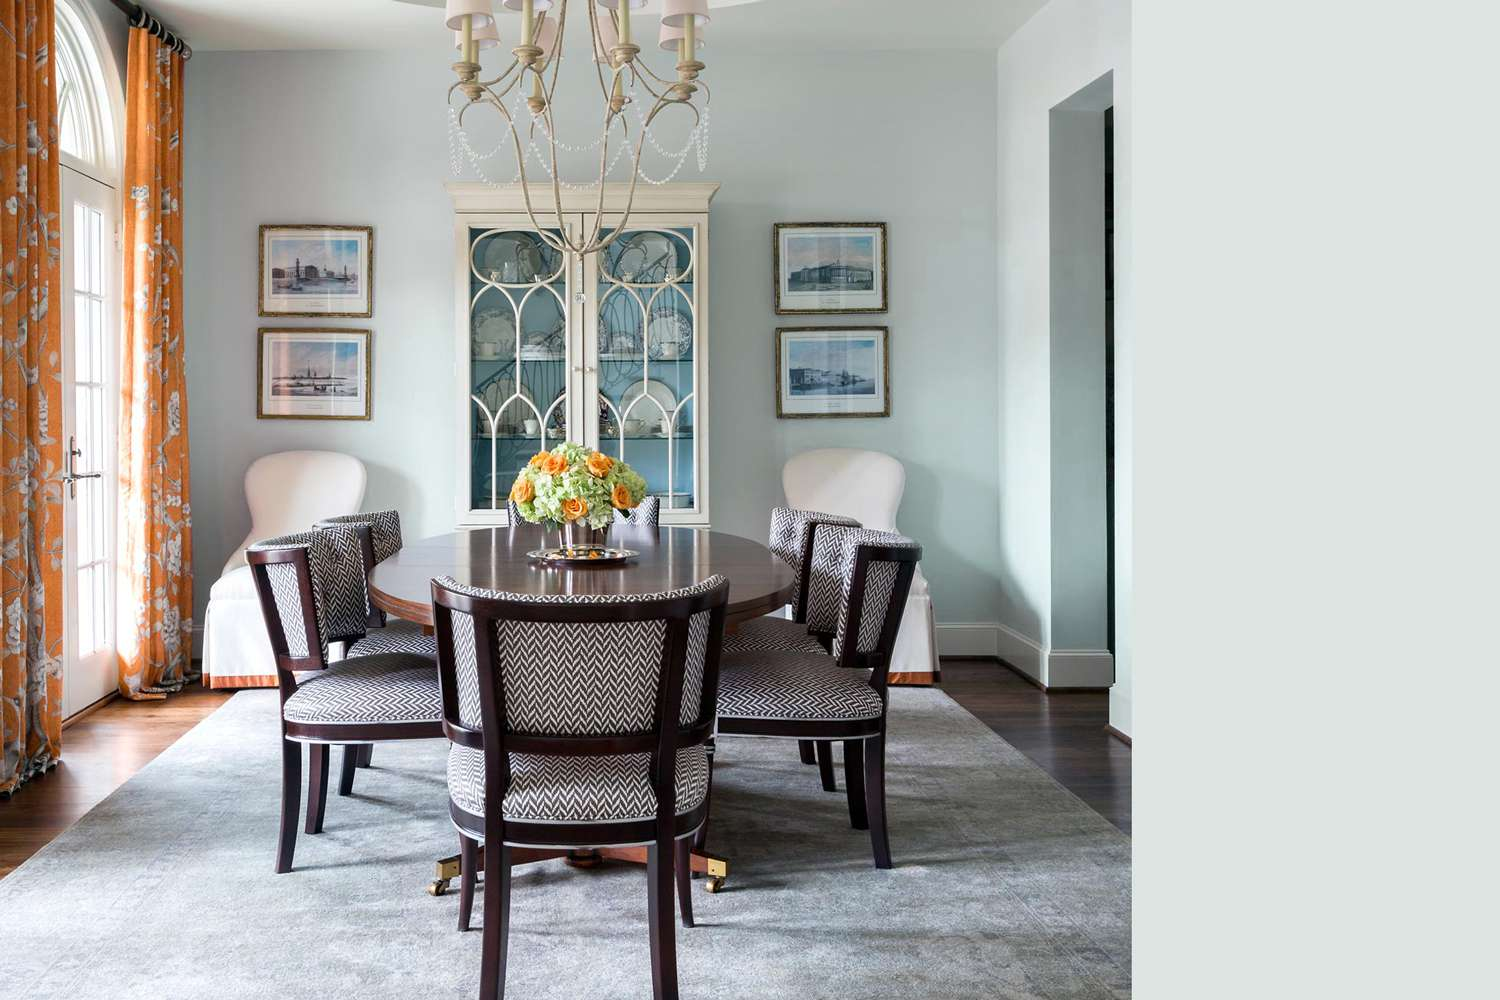 Interior painted a similar color to Benjamin Moore's Winter Ice